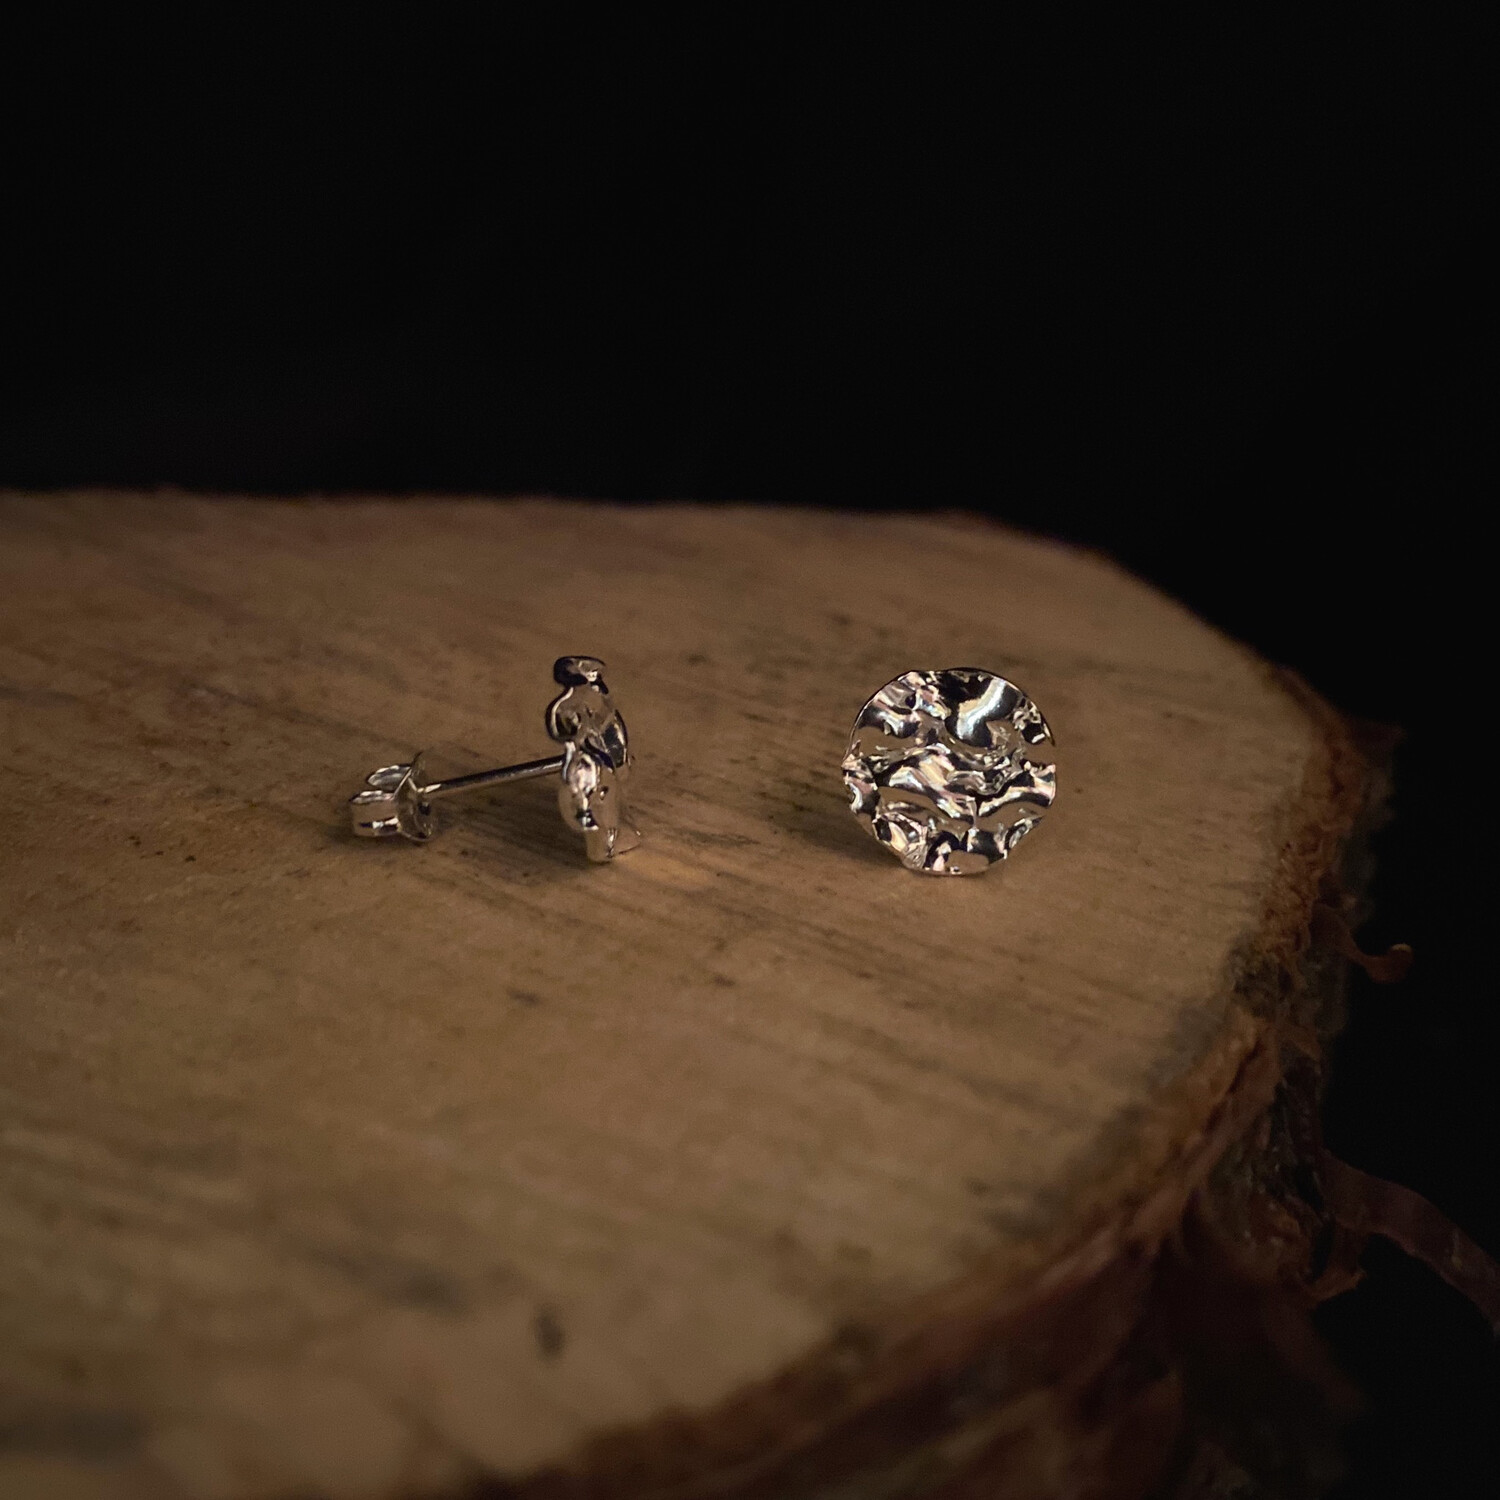 Reticulated Silver Stud Earrings